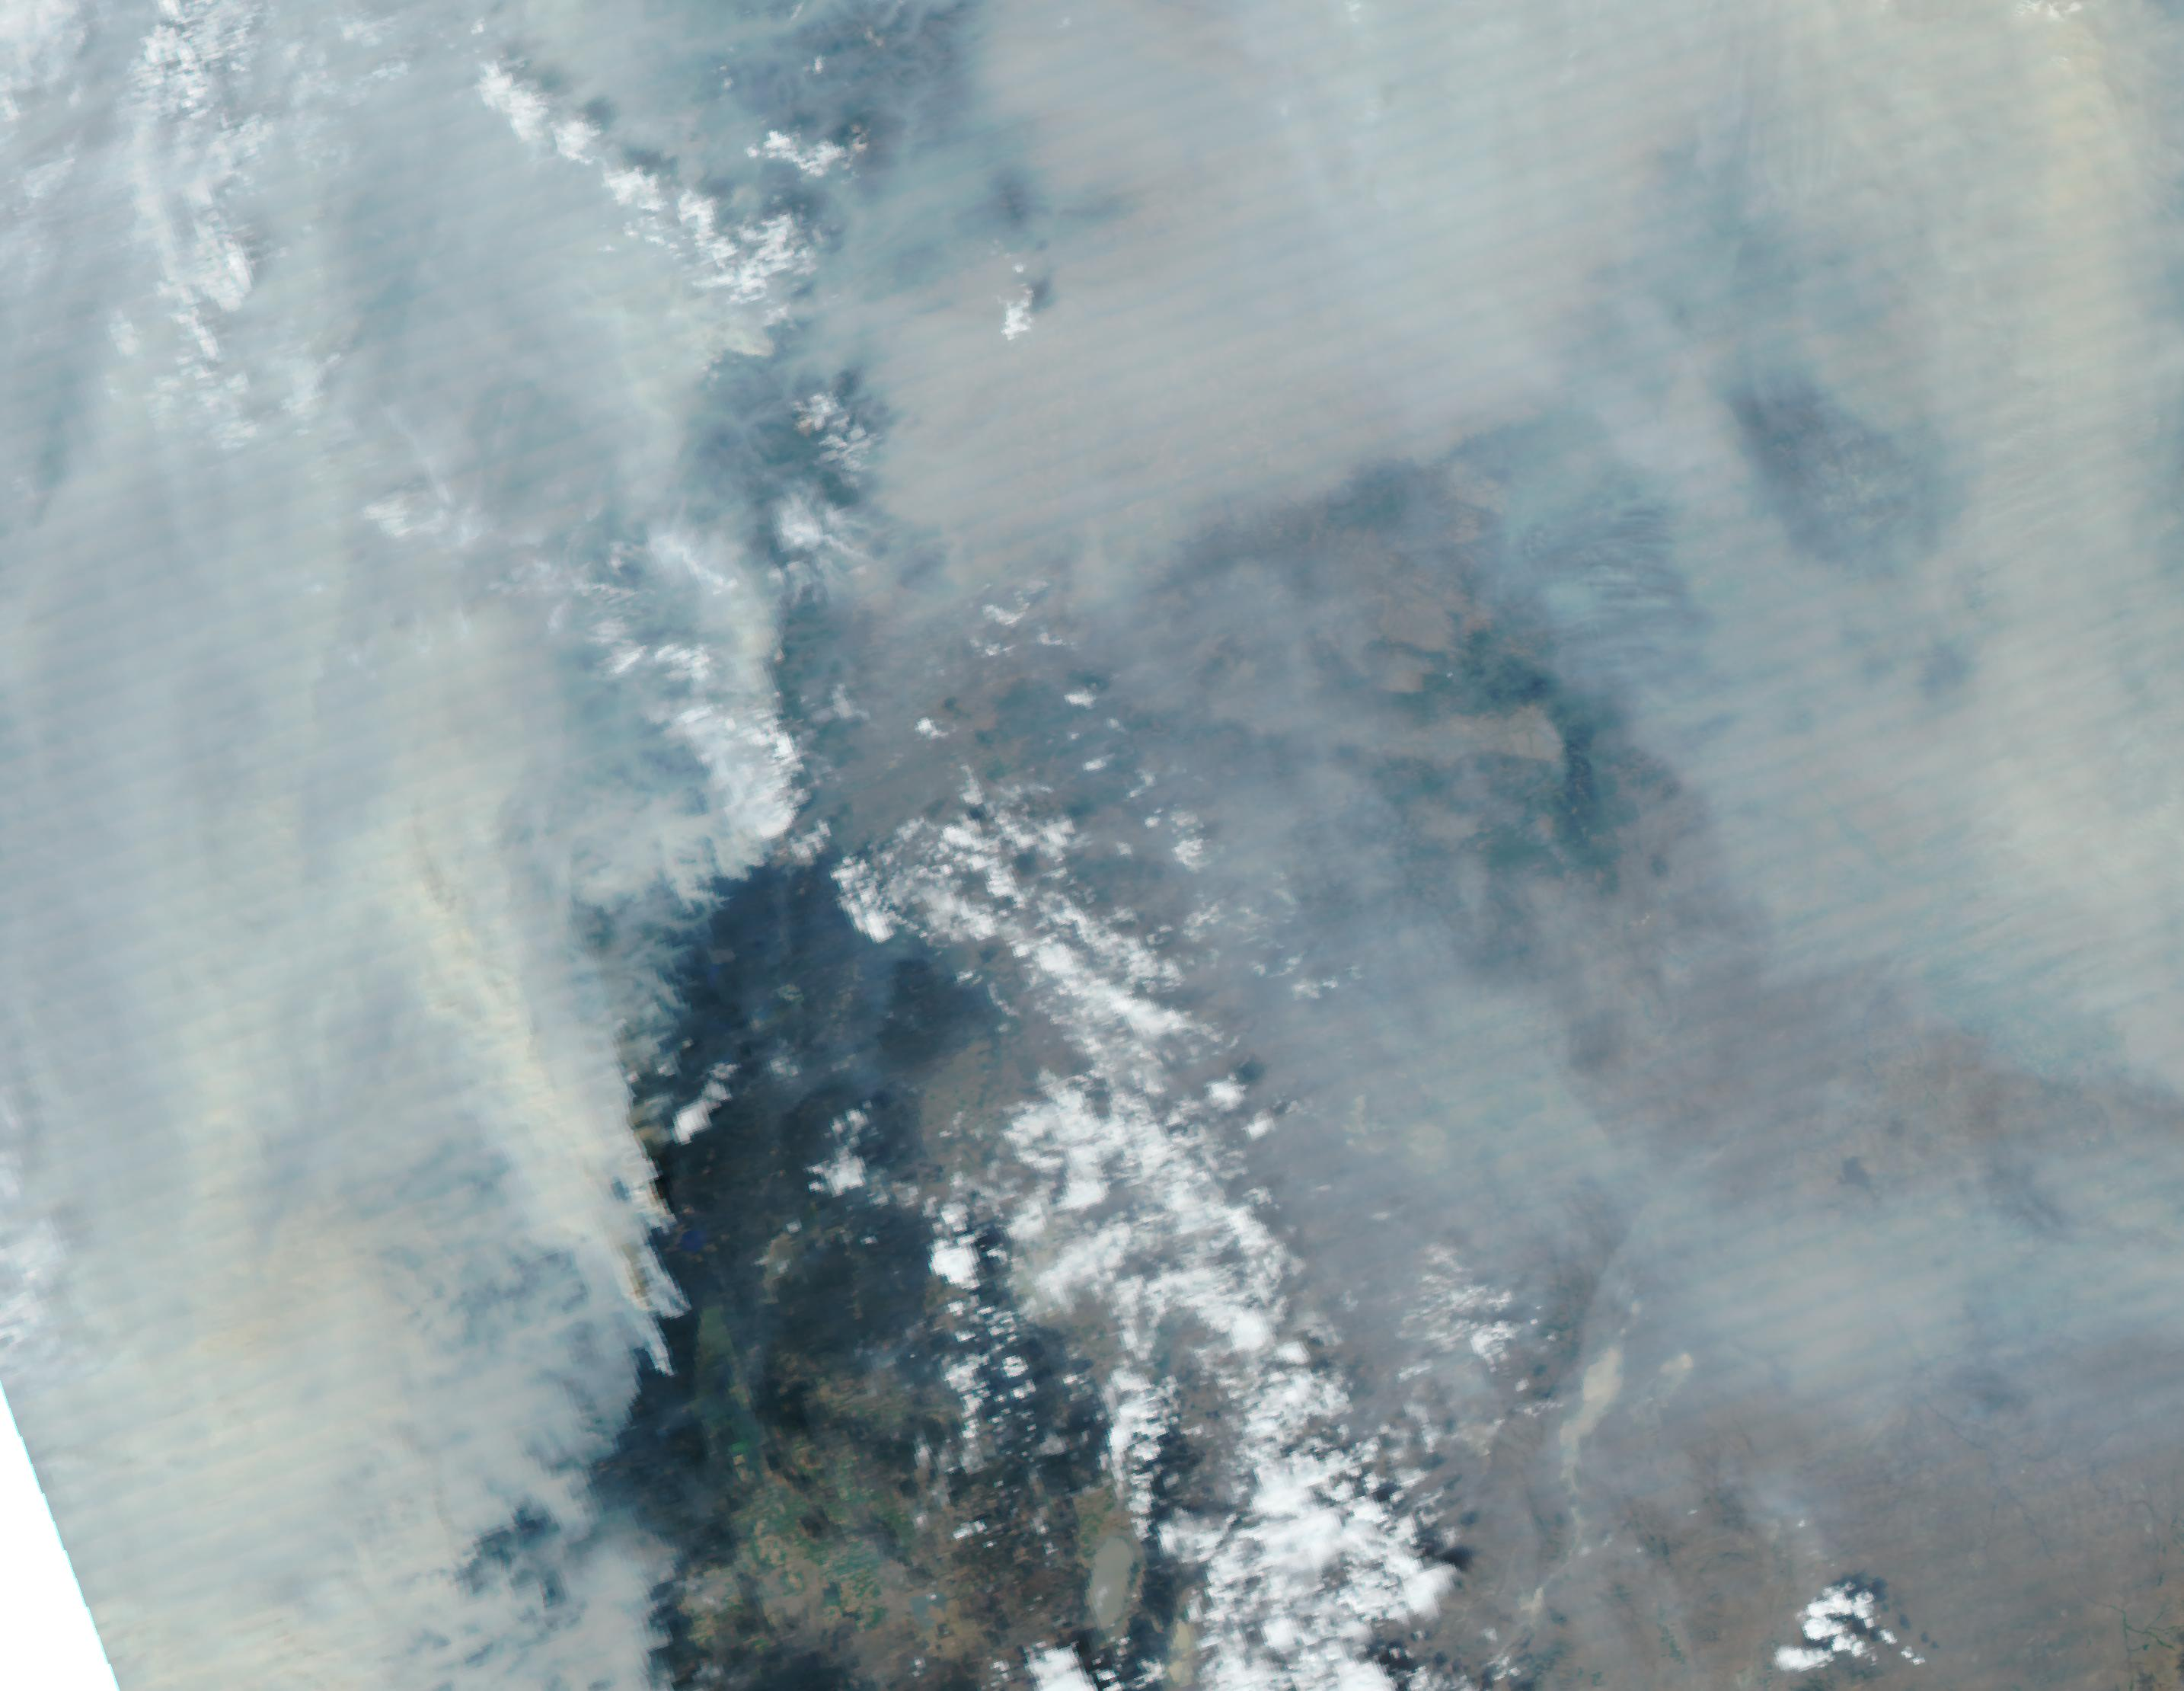 NASA satellite image shows Oregon on September 5, 2017. Air quality in Western Oregon ranges into the Unhealthy and even Hazardous categories over the Labor Day weekend thanks to smoke from forest fires.